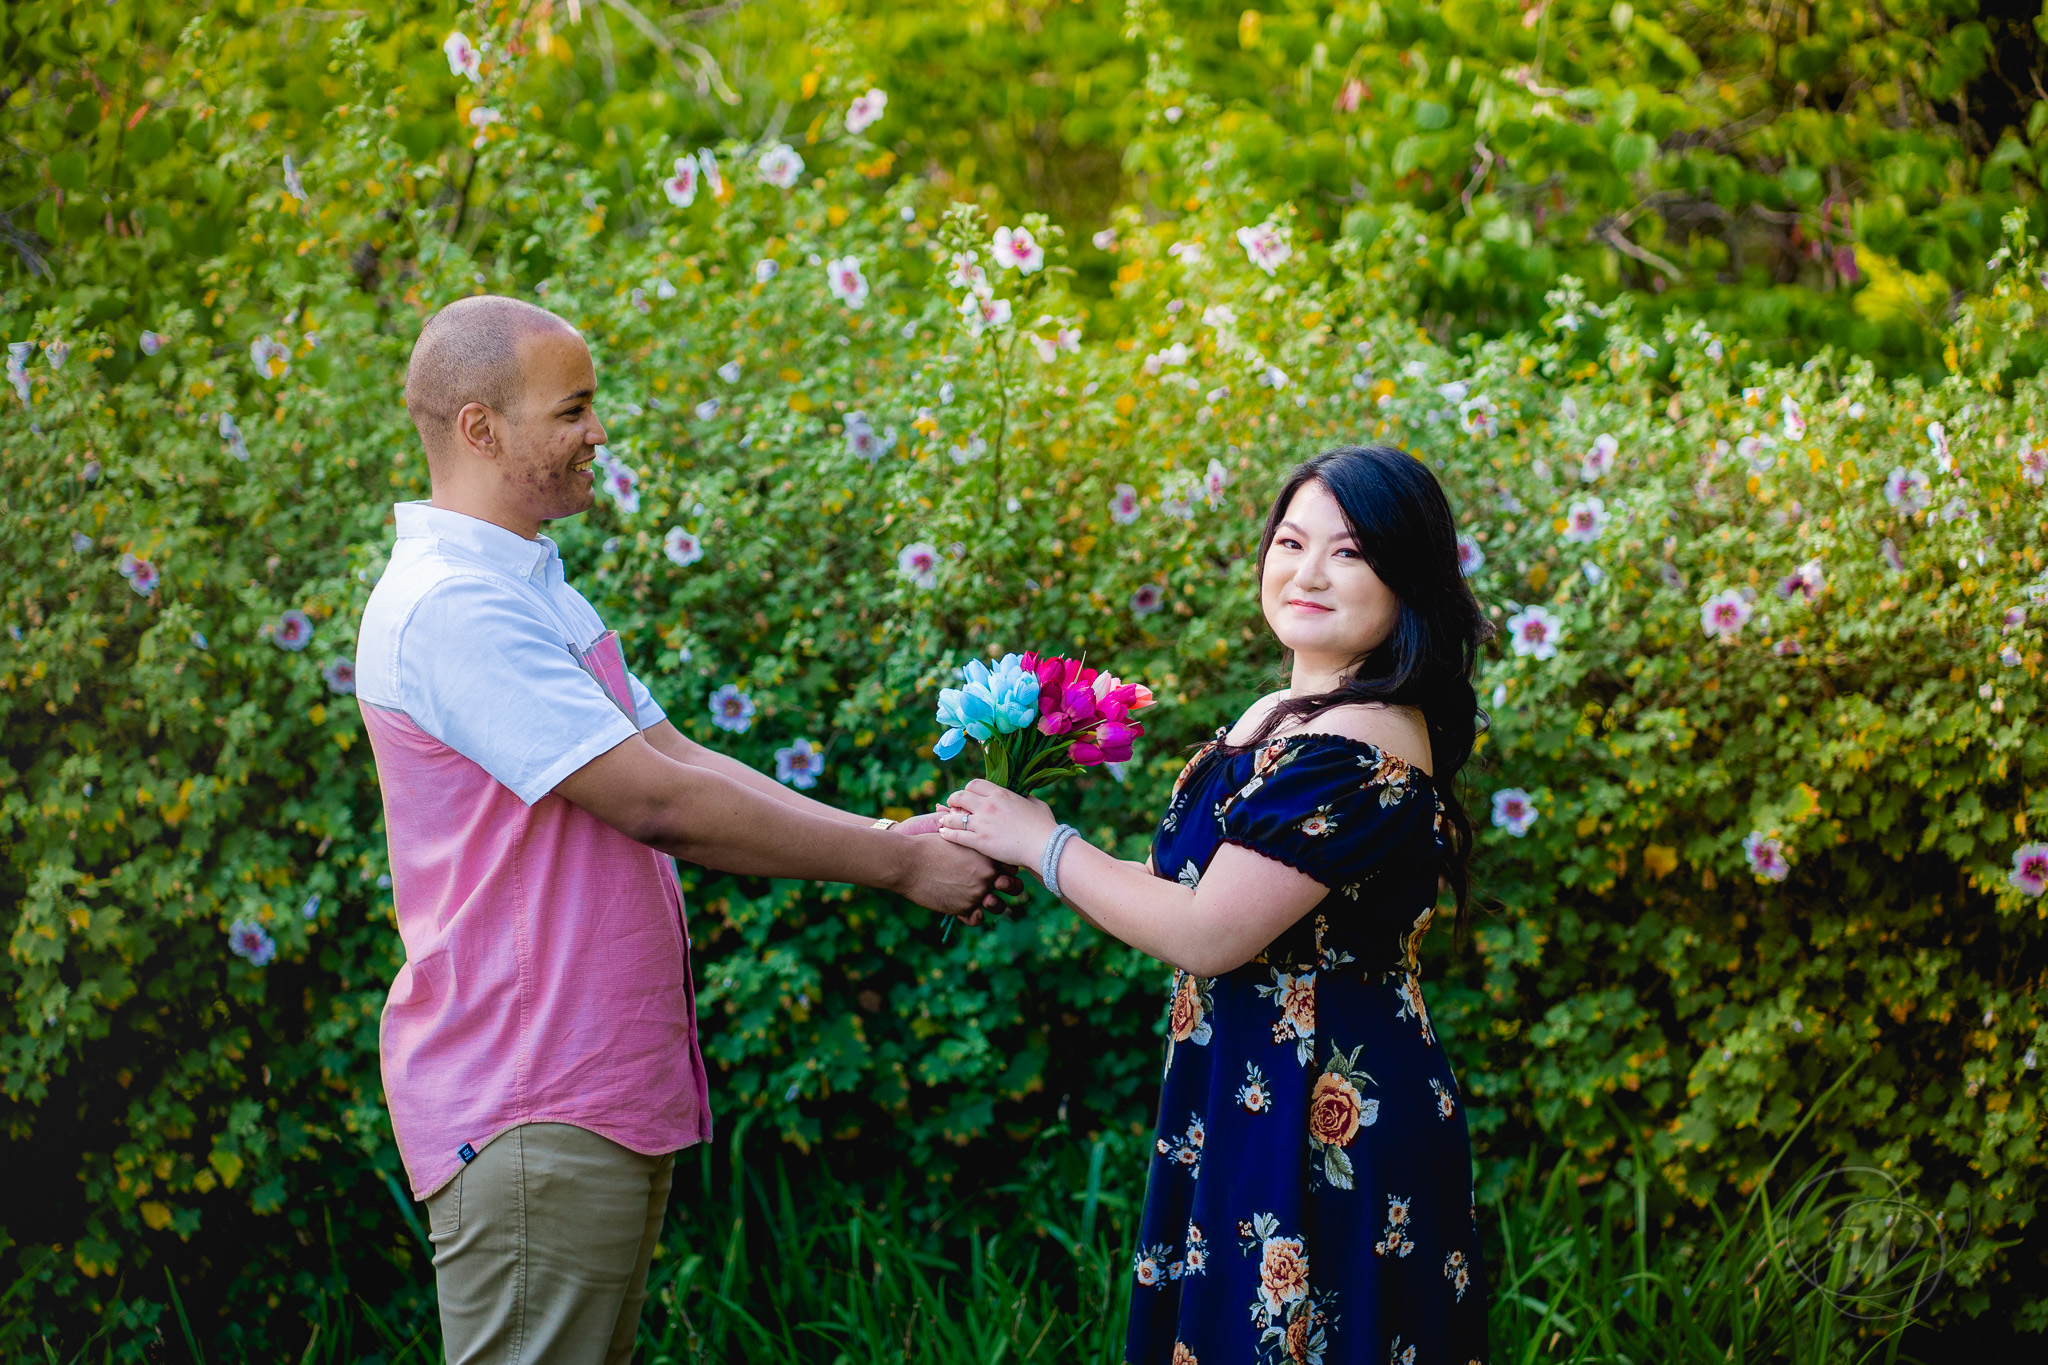 2019.06.16_Mosara-Brandon_Engagement_53.jpg